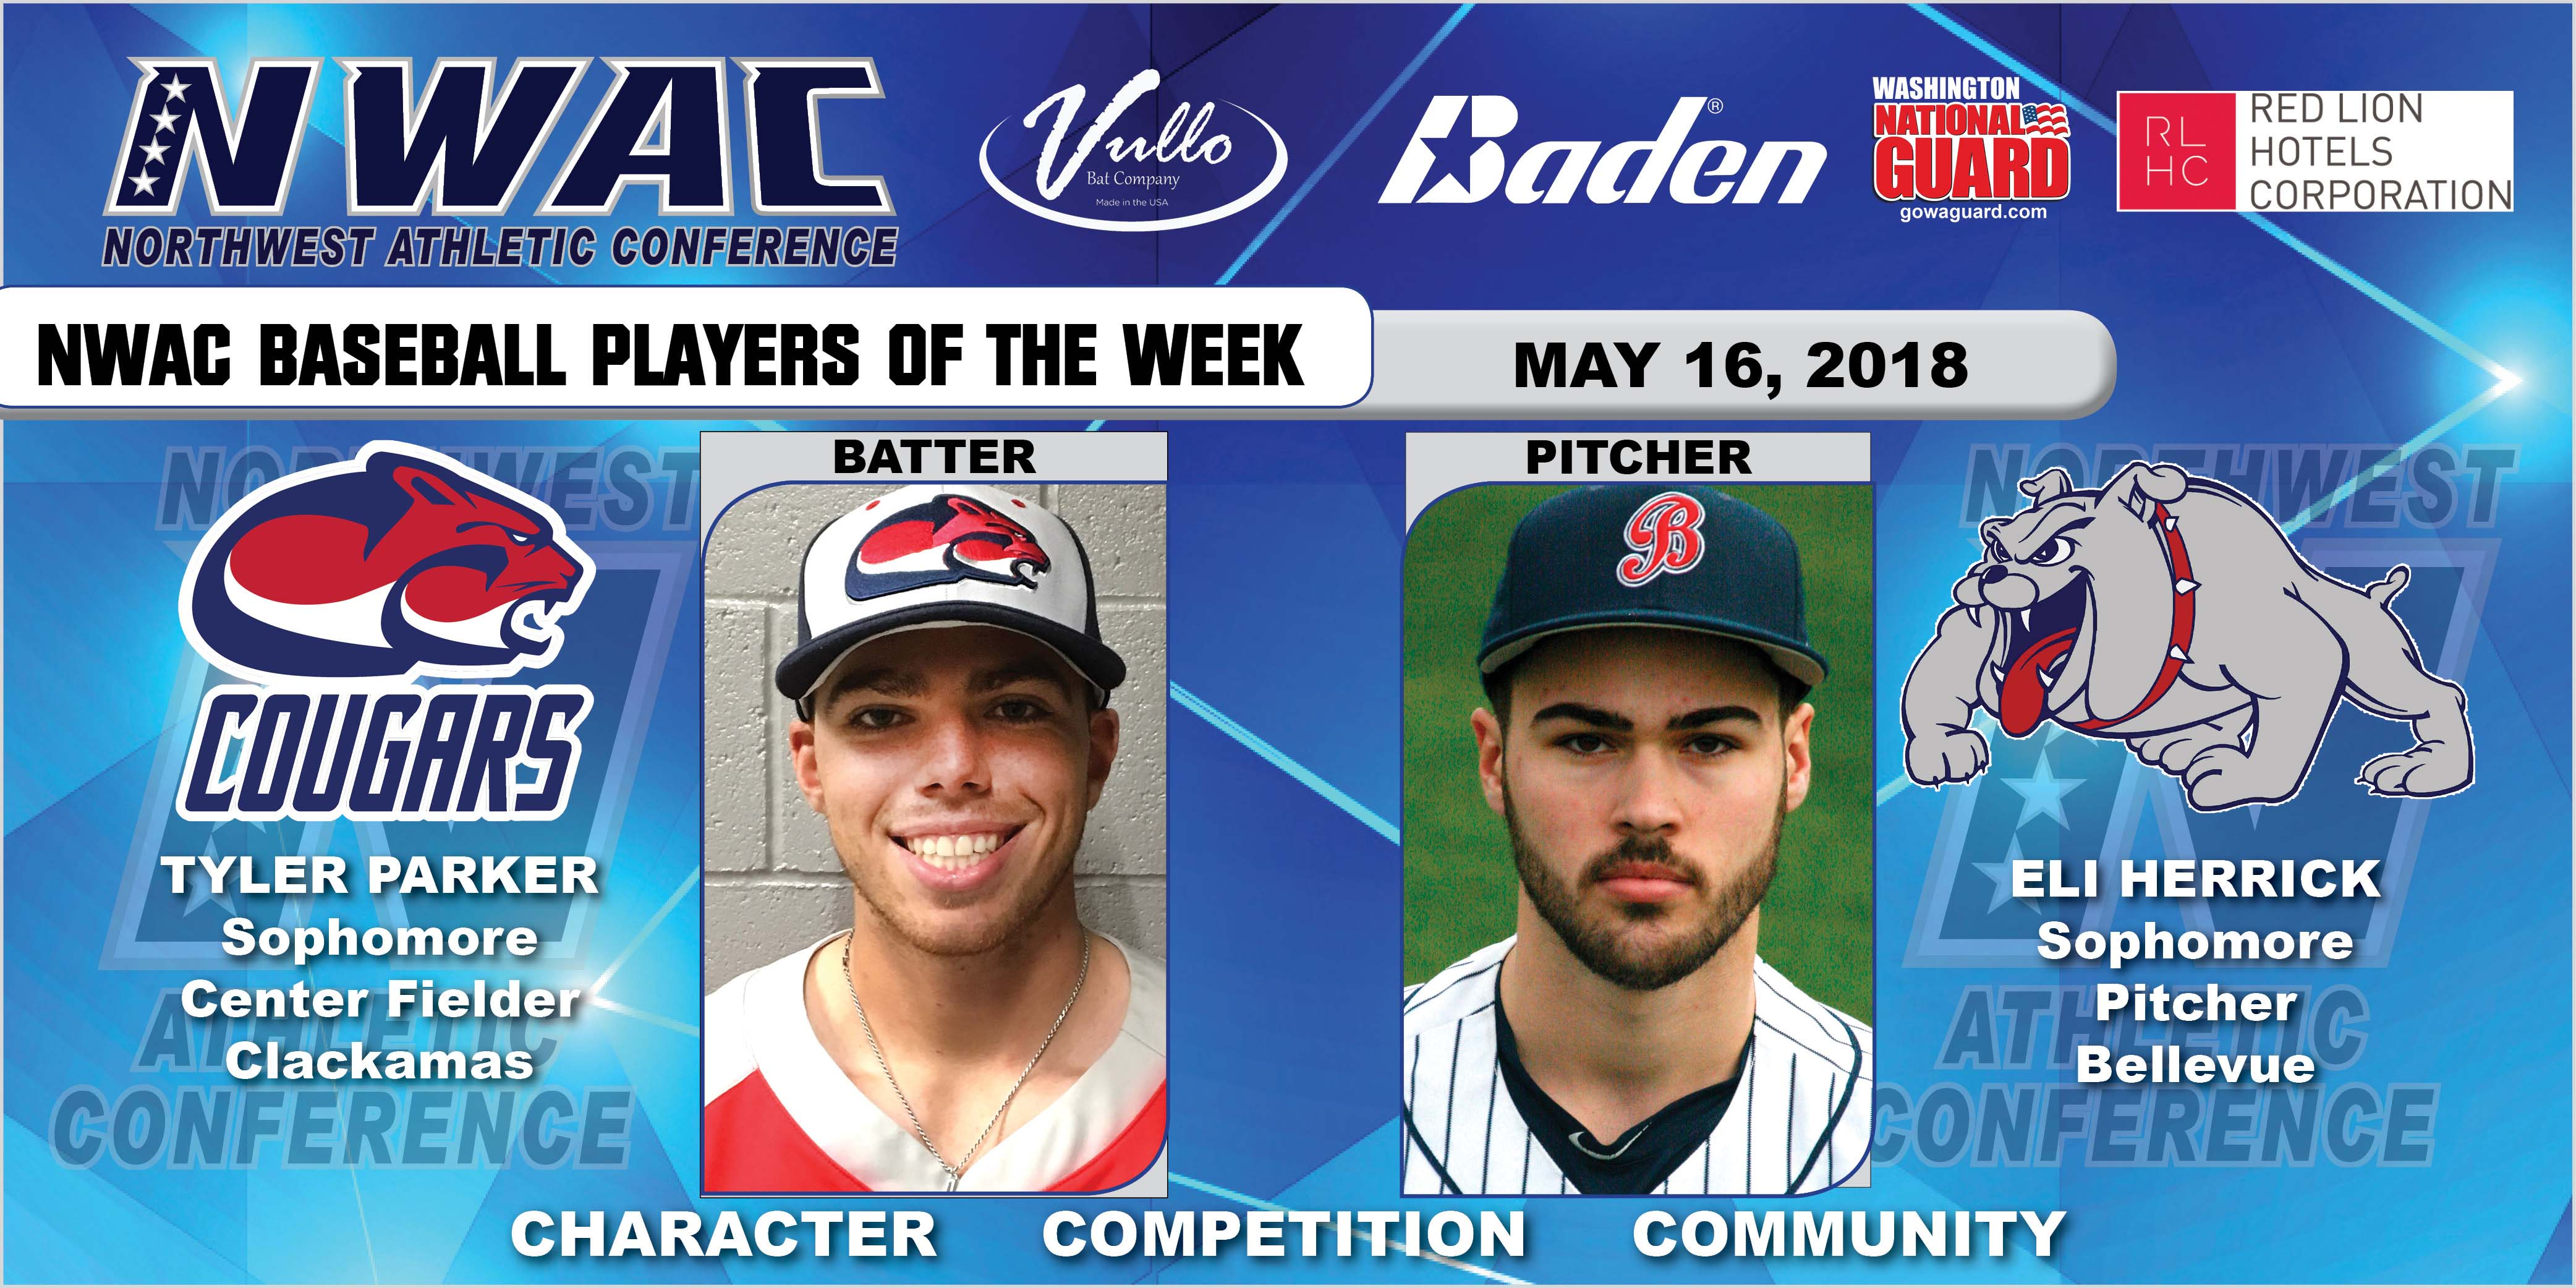 Tyler Parker and Eli Herrick players of the week collage